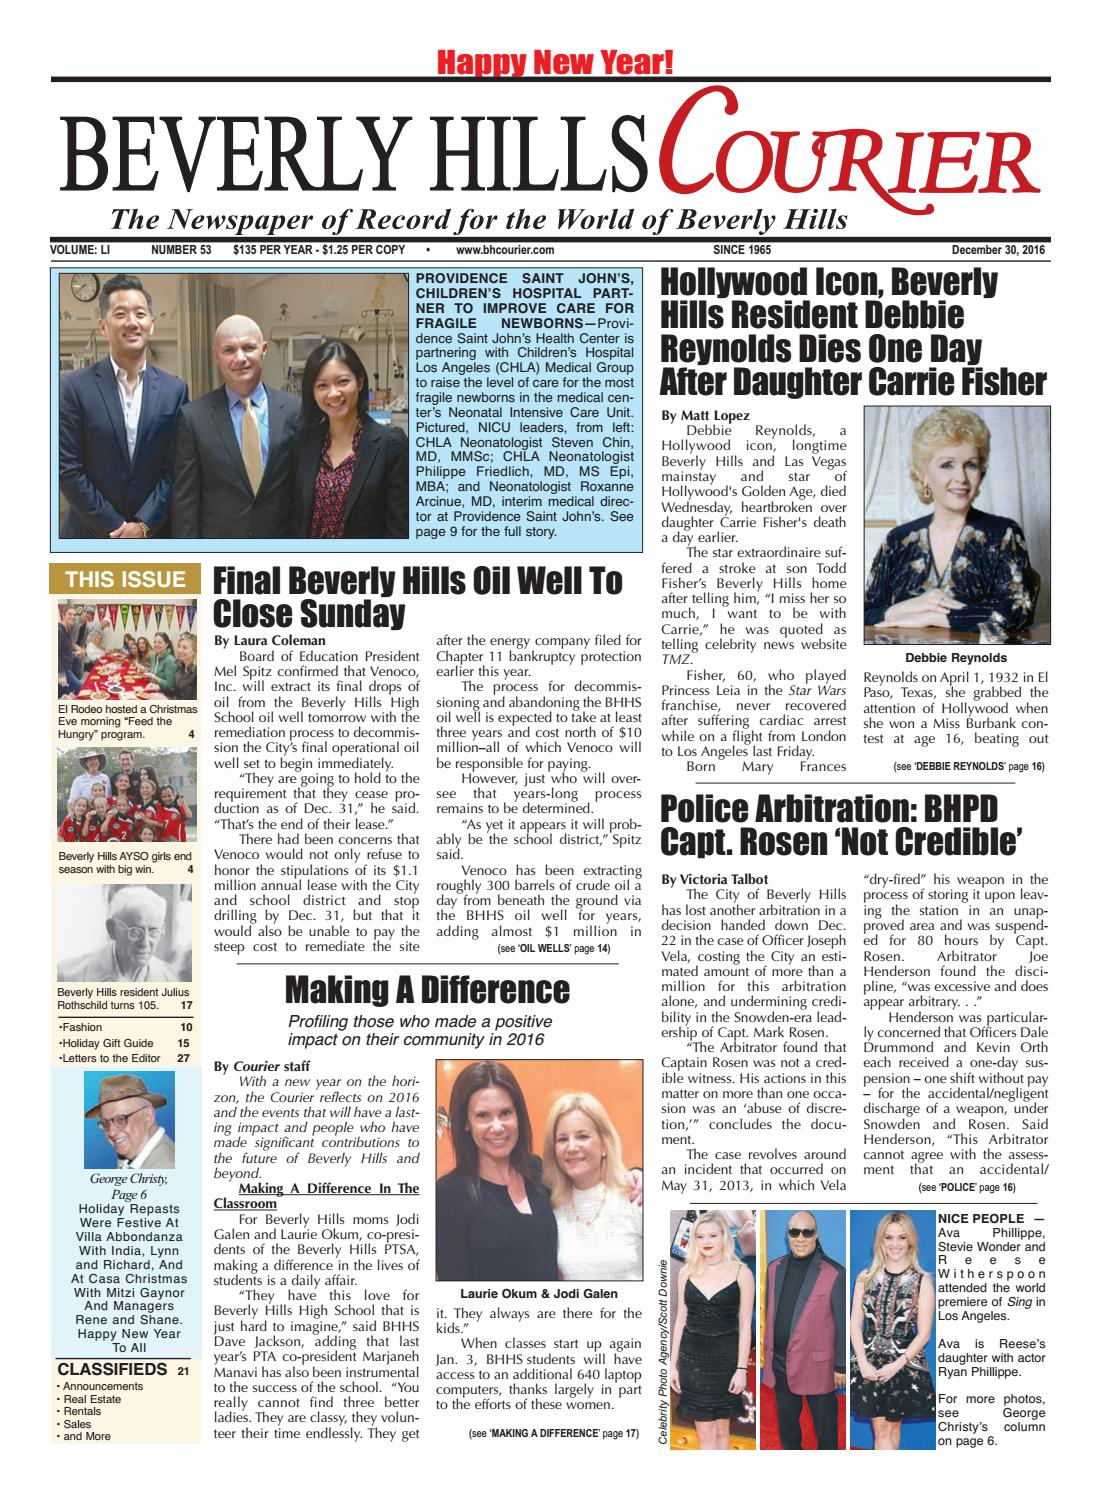 BHCourier E-edition 123016 by The Beverly Hills Courier - issuu